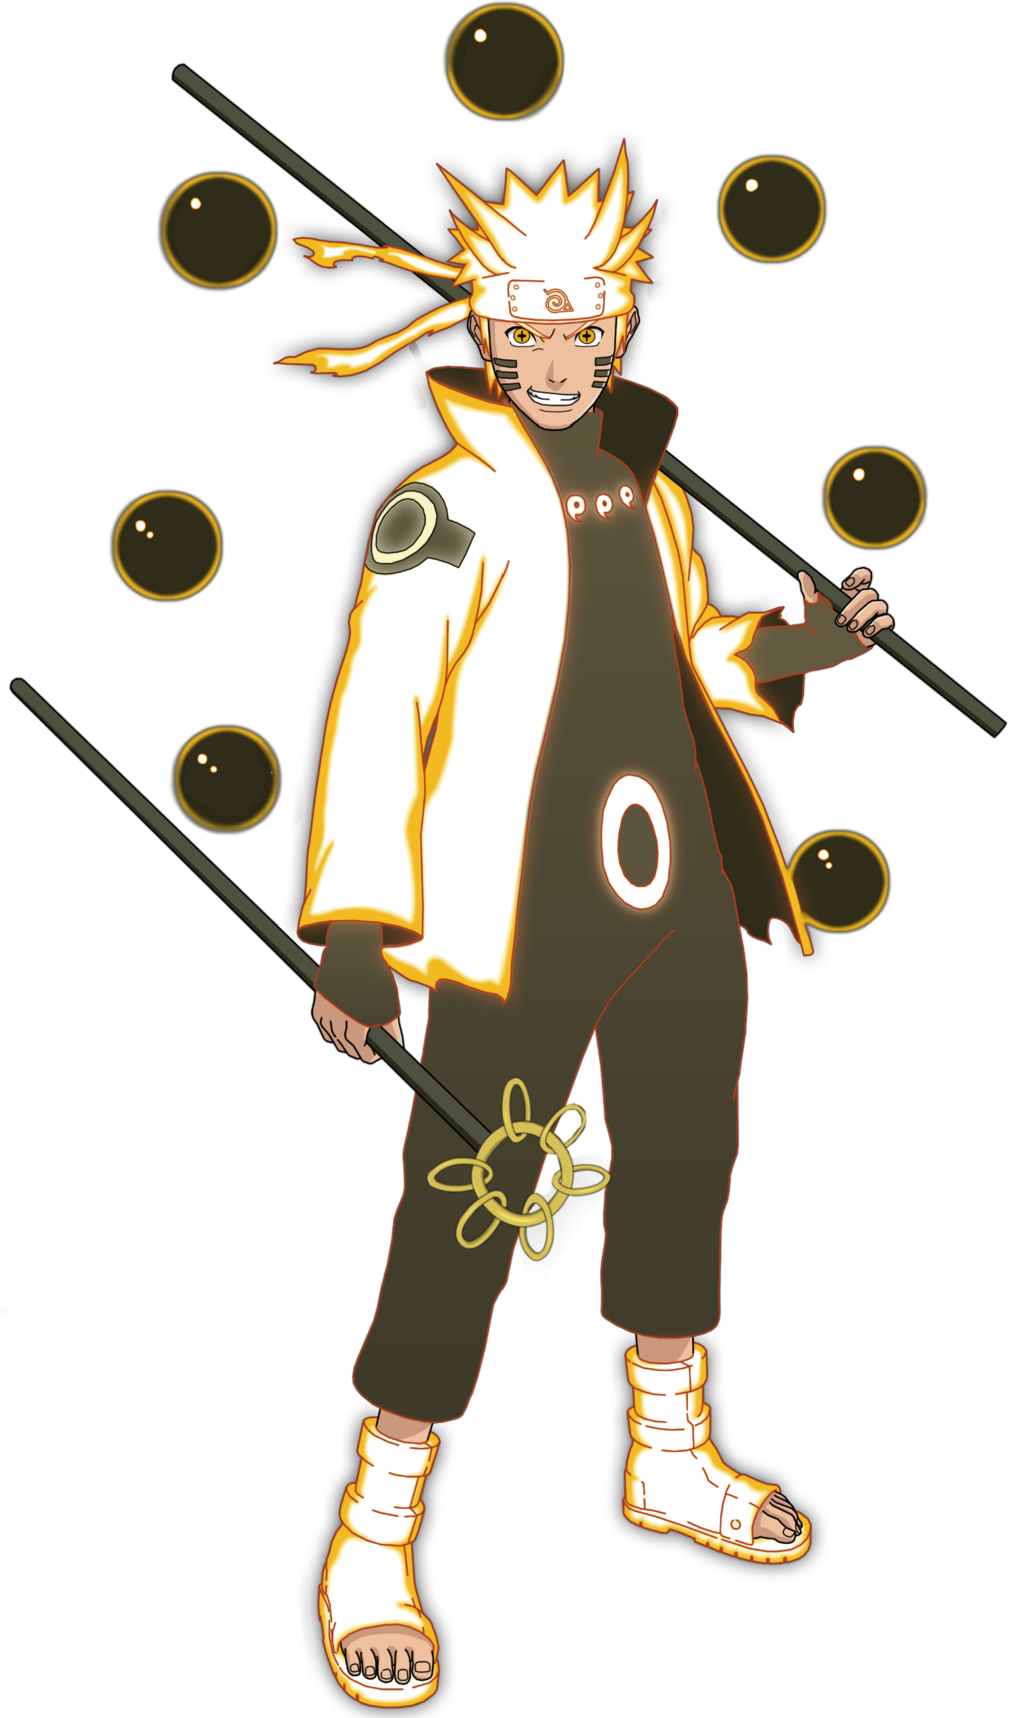 Naruto rikudo mode render by vexahadi manga pinterest - Comment dessiner sasuke ...